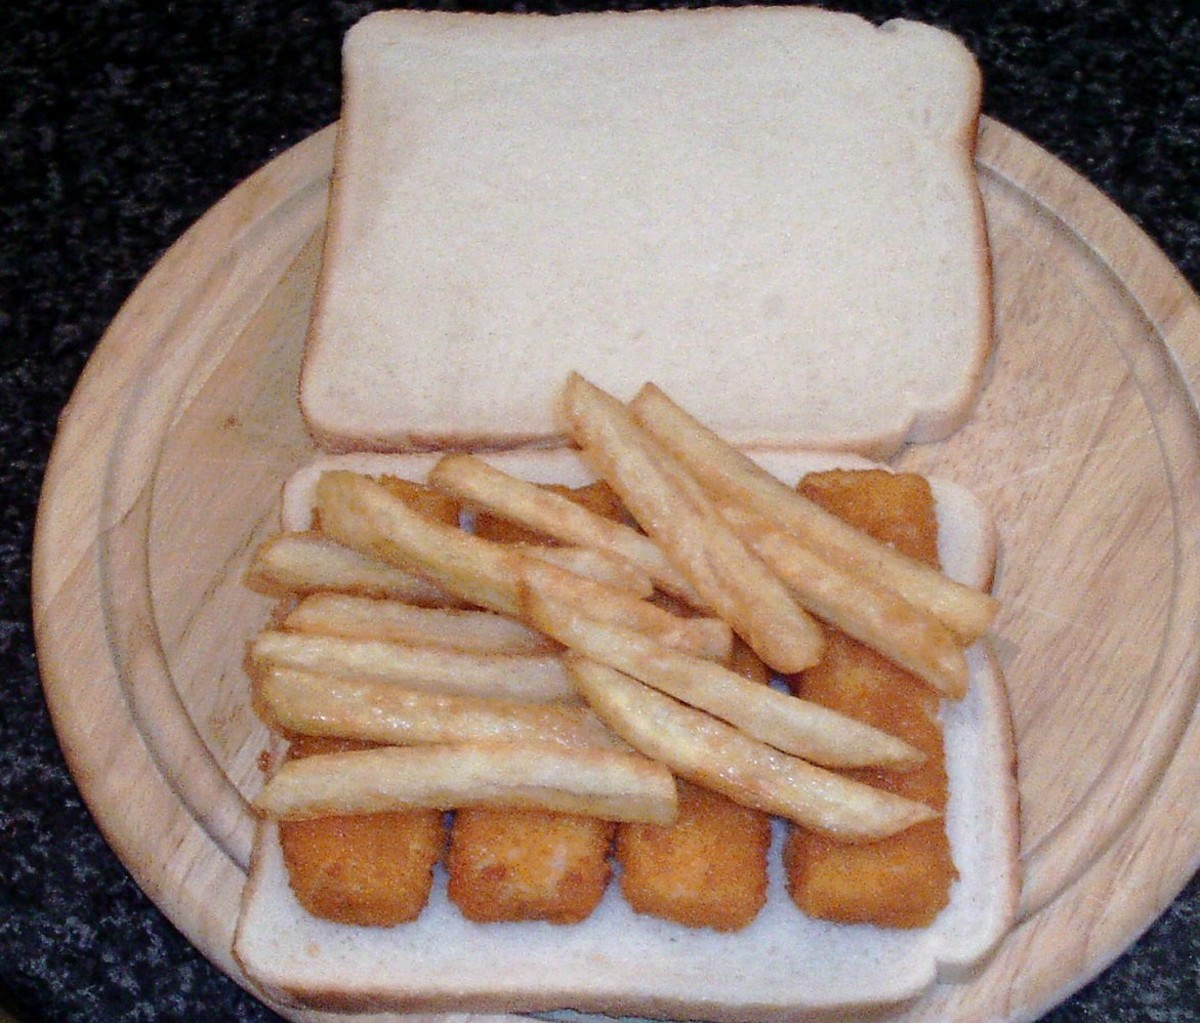 Chips are placed on top of fish fingers